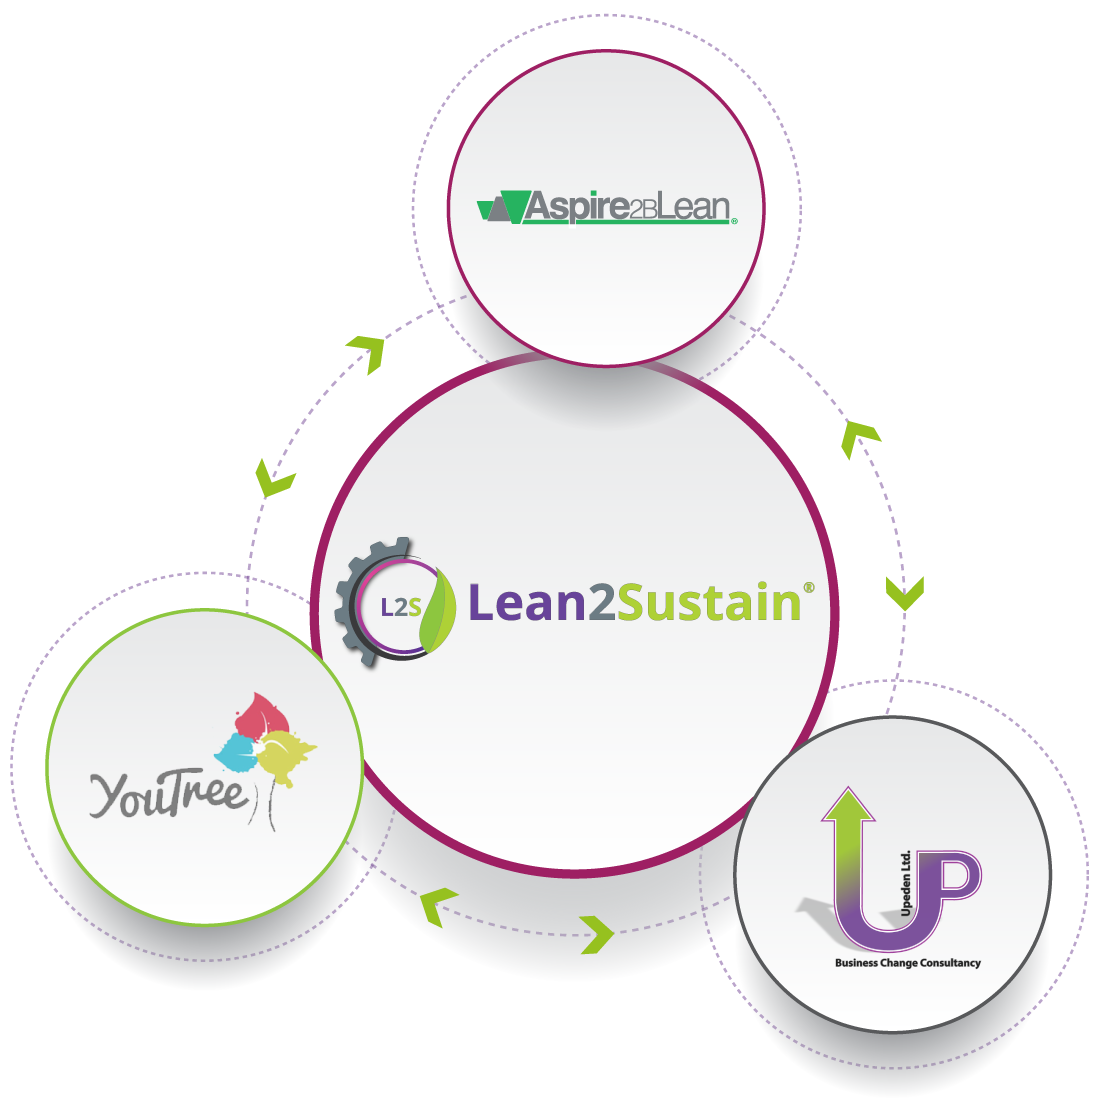 the lean2sustain family